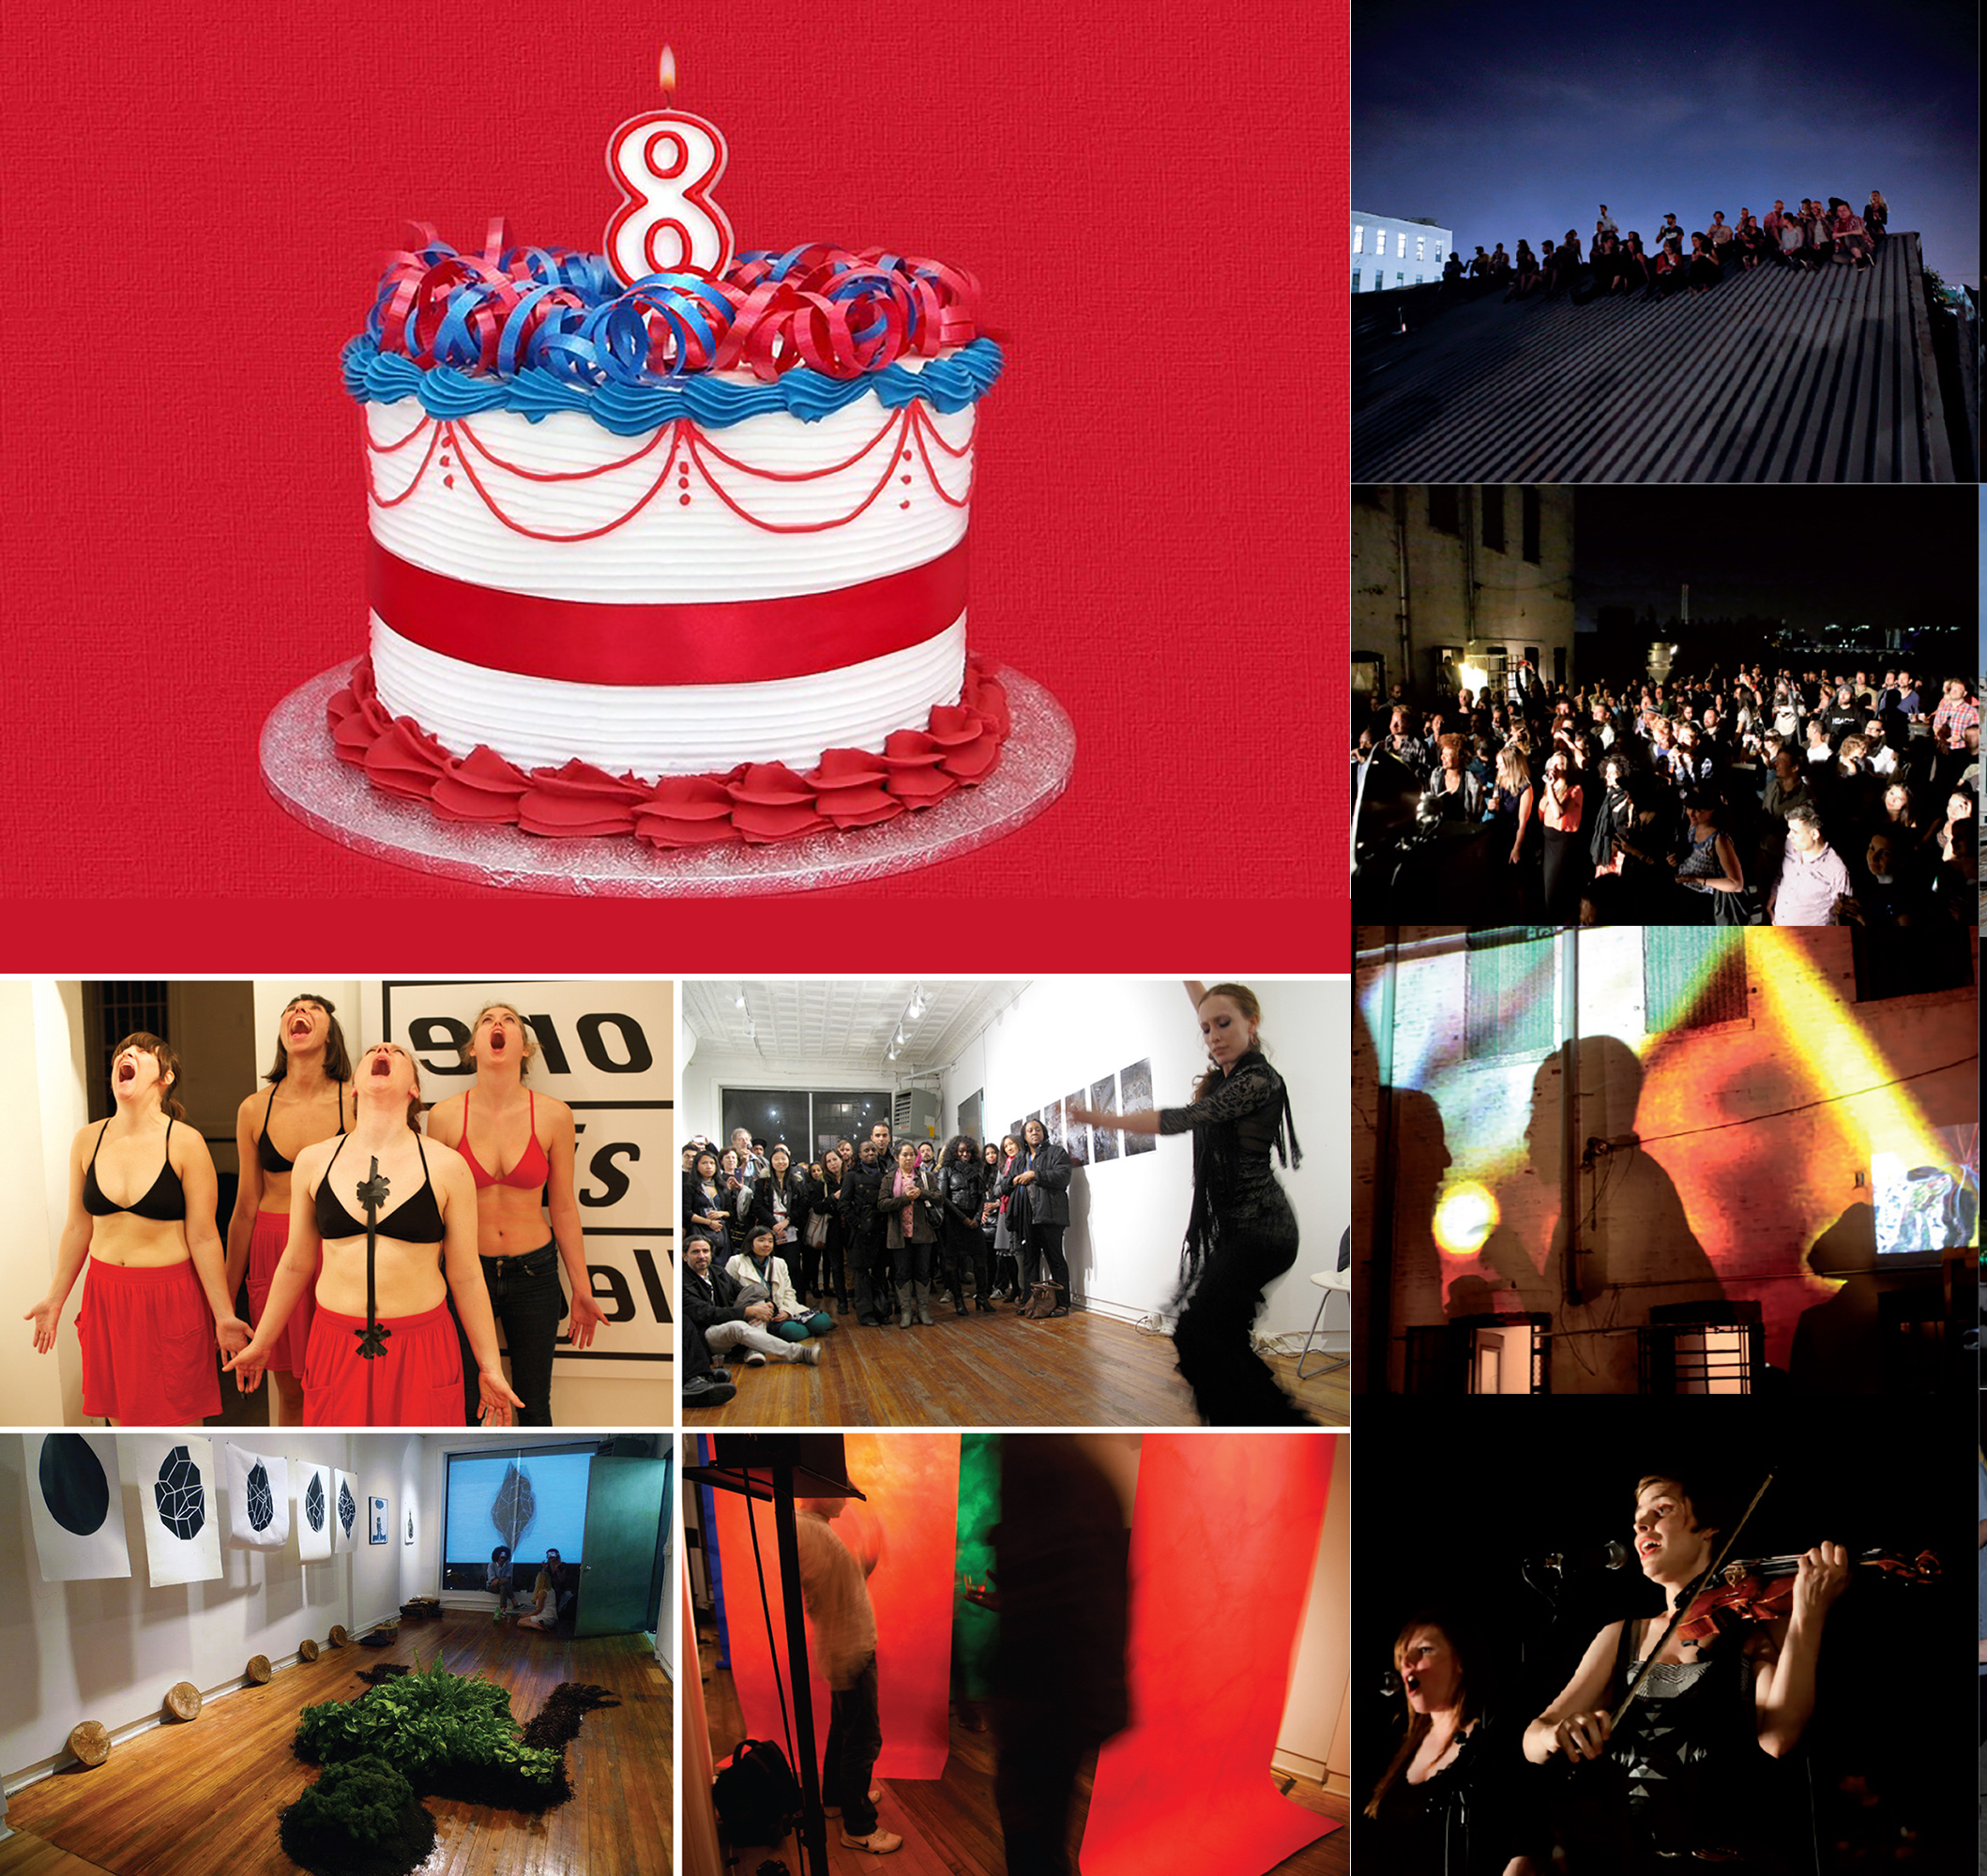 BIRTHDAY BASH - Monday, Feb 4, 20197:30 pm @ Mothership NYCLet's celebrate NOoSPHERE Arts' 8th Anniversary! Musical acts by two beloved Mothership regulars: Katy Gunn (singer-songwriter & musical performance artist, NYC/Copenhagen) and Lenna Pierce (singing cellist, NYC) and interactive dance performance by Daisy Bugarin & Crew from the Semillas Collective (NYC/Mexico). Exhibition of visual art by NOoSPHERE Artists from across the globe.